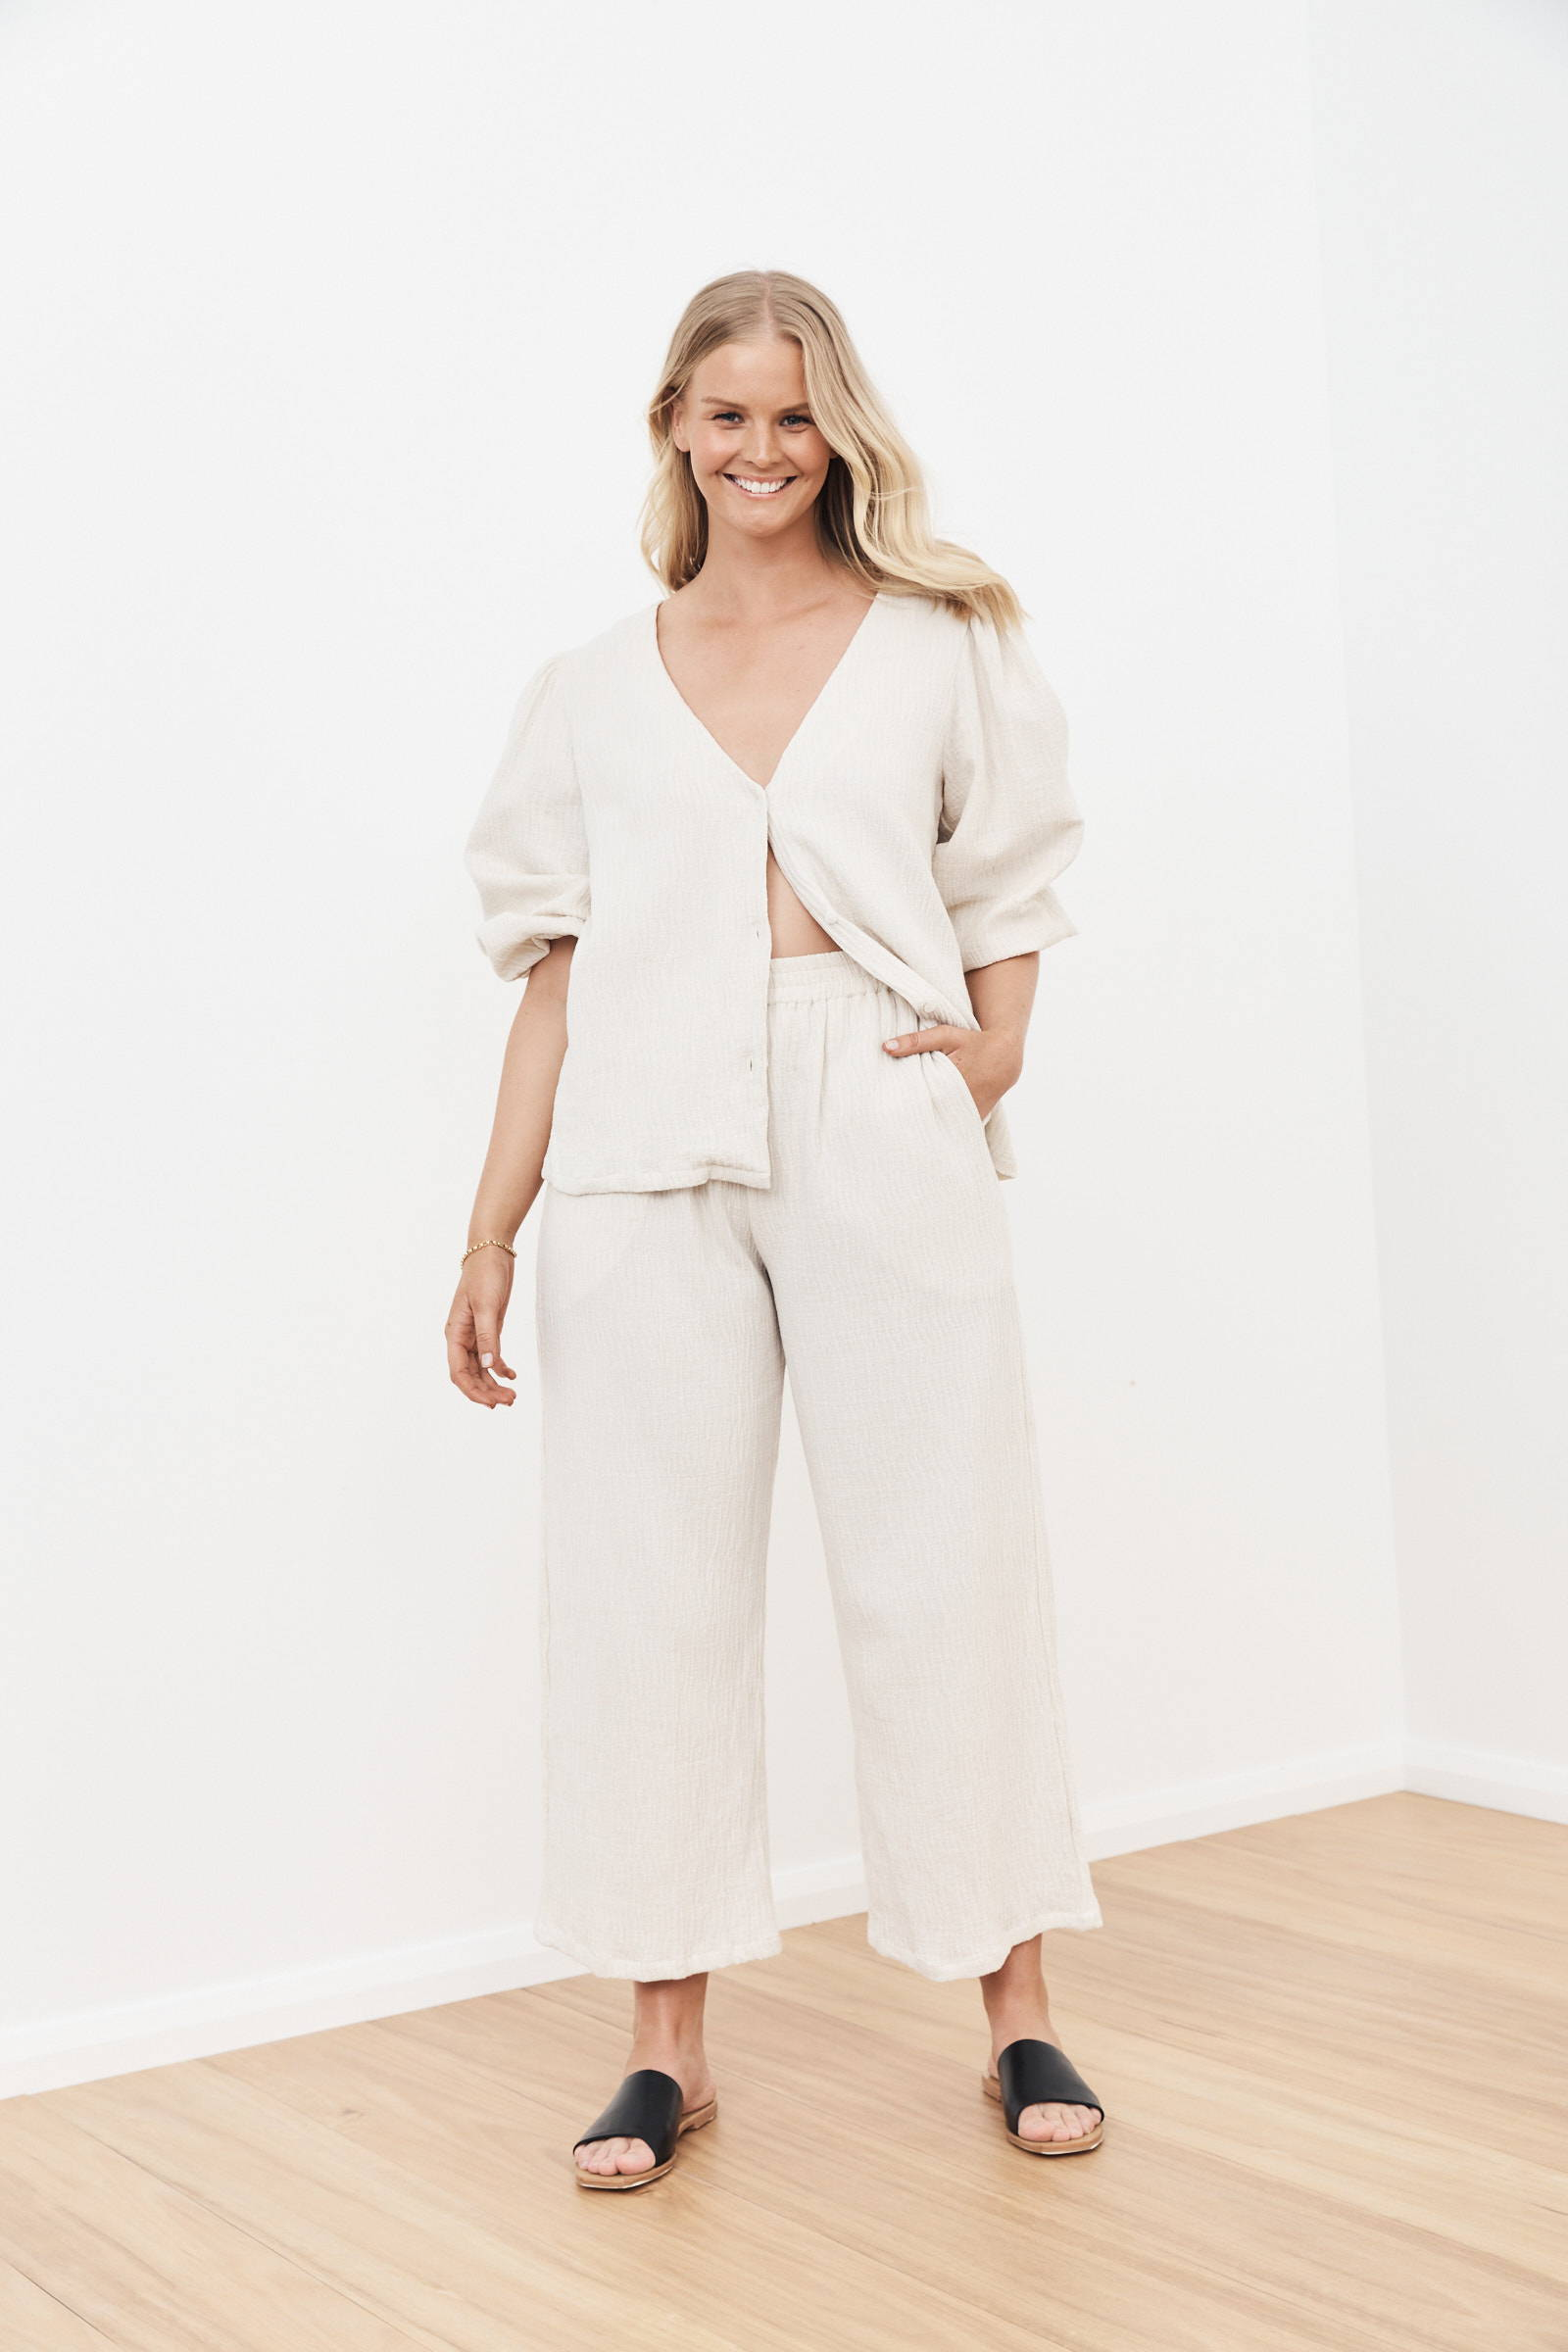 smiling blonde woman wearing natural linen loose clothing with black slides